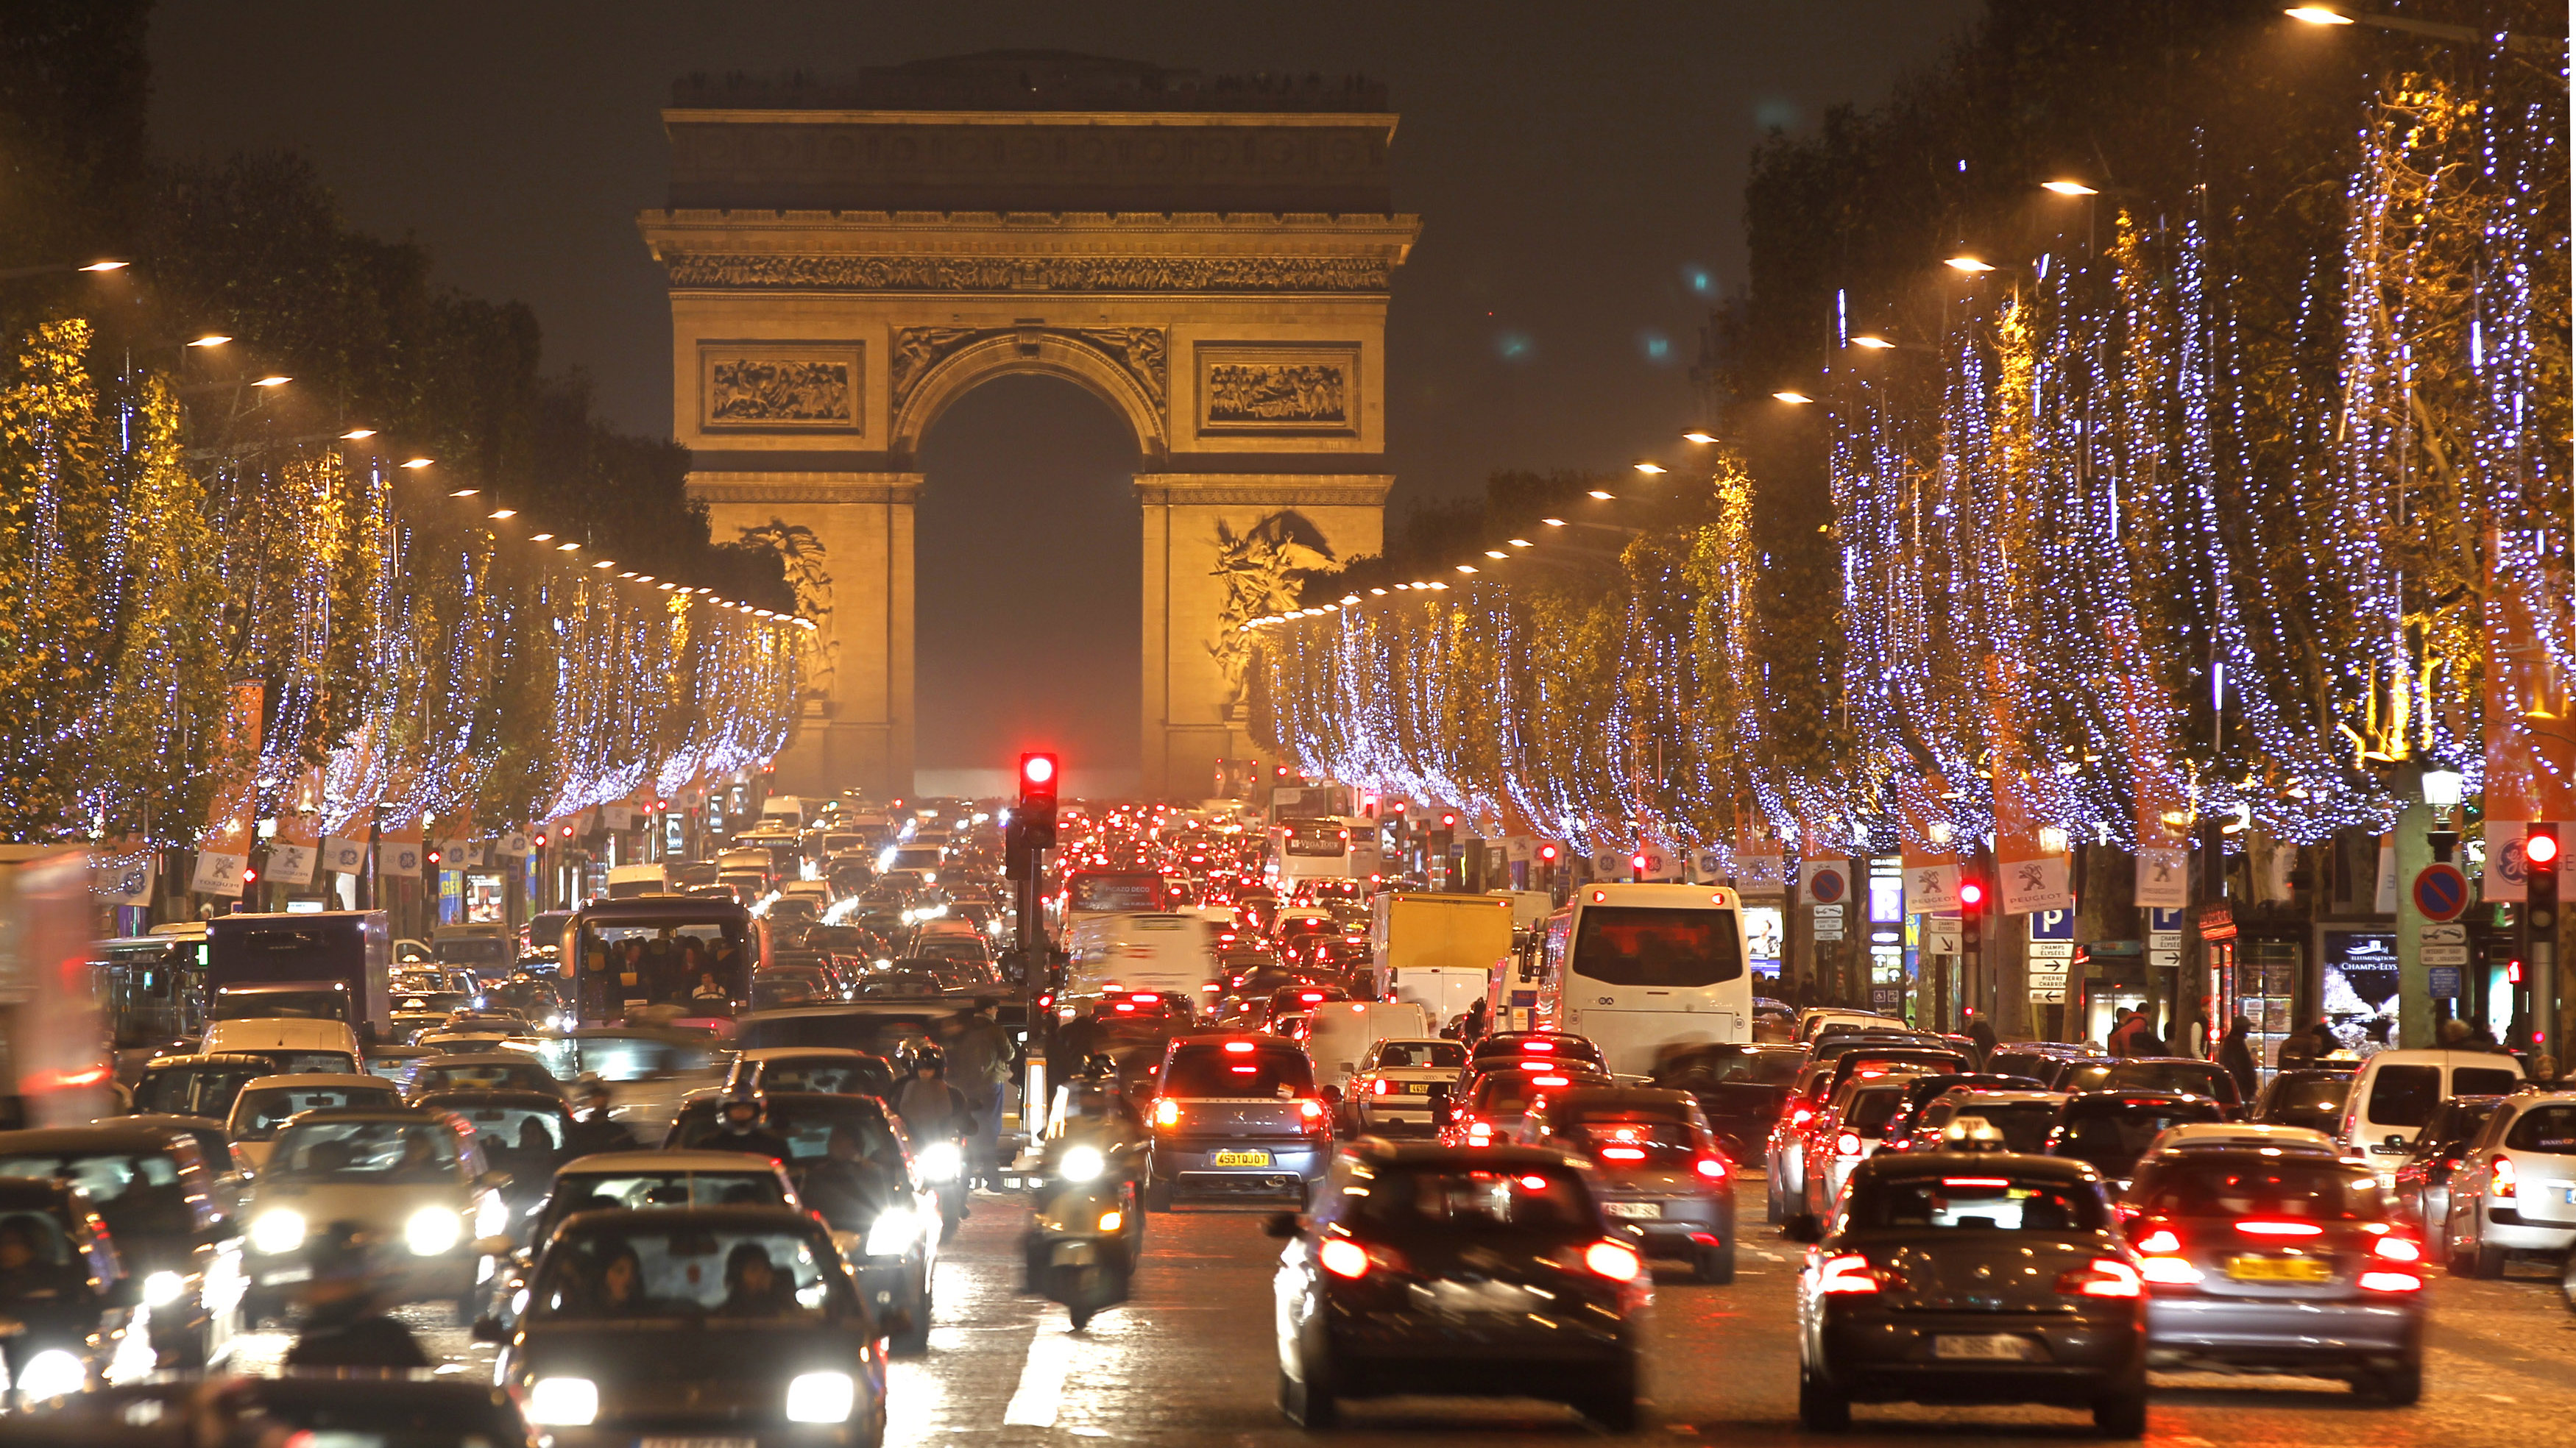 Holiday lights hang from trees to illuminate Champs Elysees in Paris as rush hour traffic fills the avenue leading up to the Arc de Triomphe November 22, 2010.